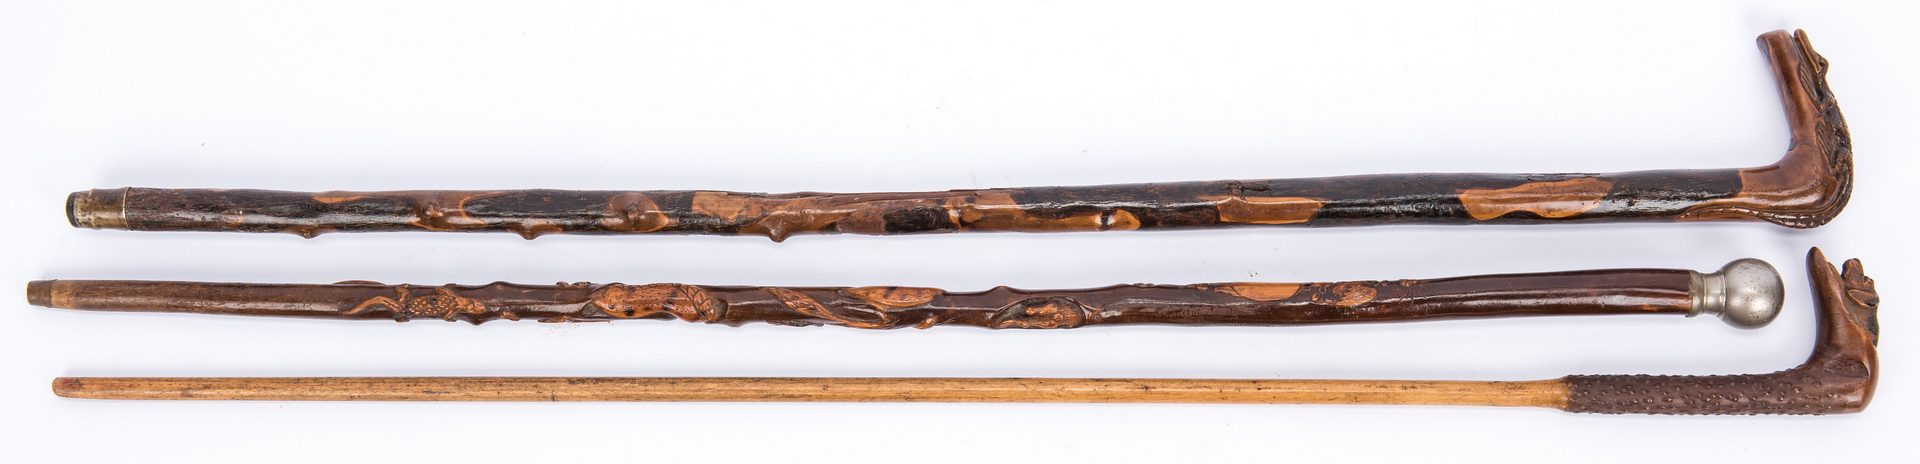 Lot 369: 6 European, American, Central American Carved Canes